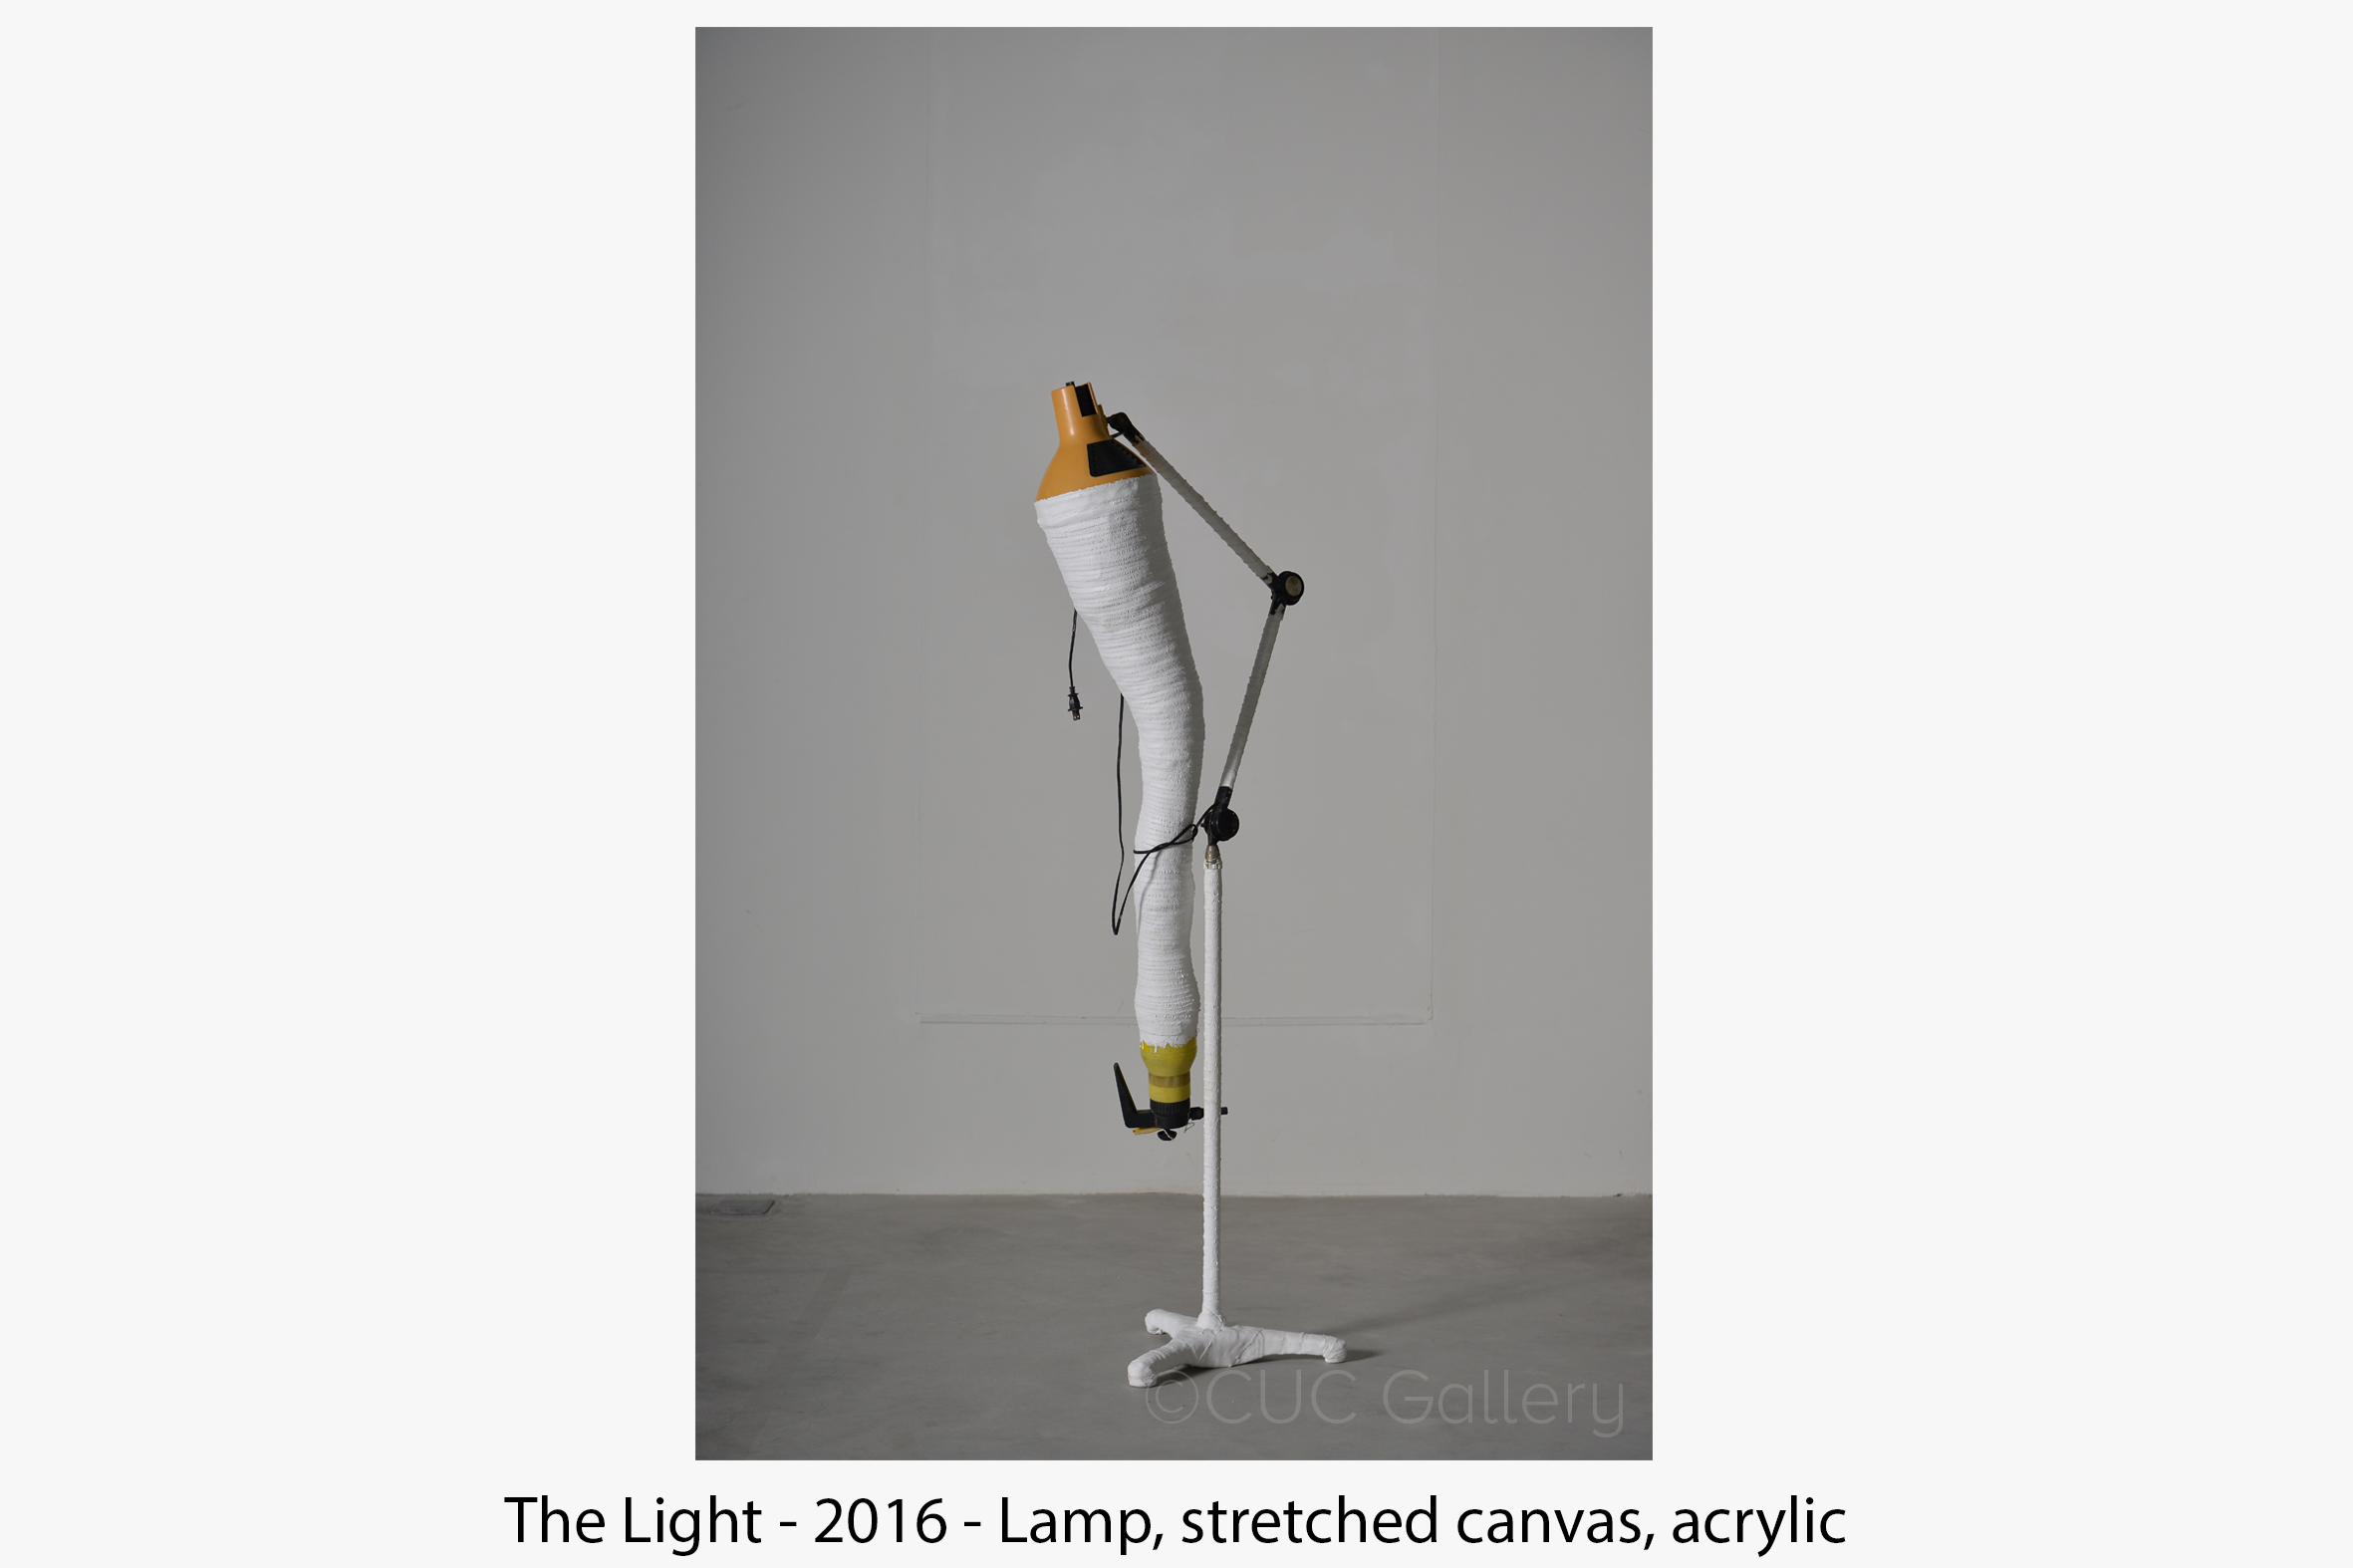 The+Light+2016 (1).jpg